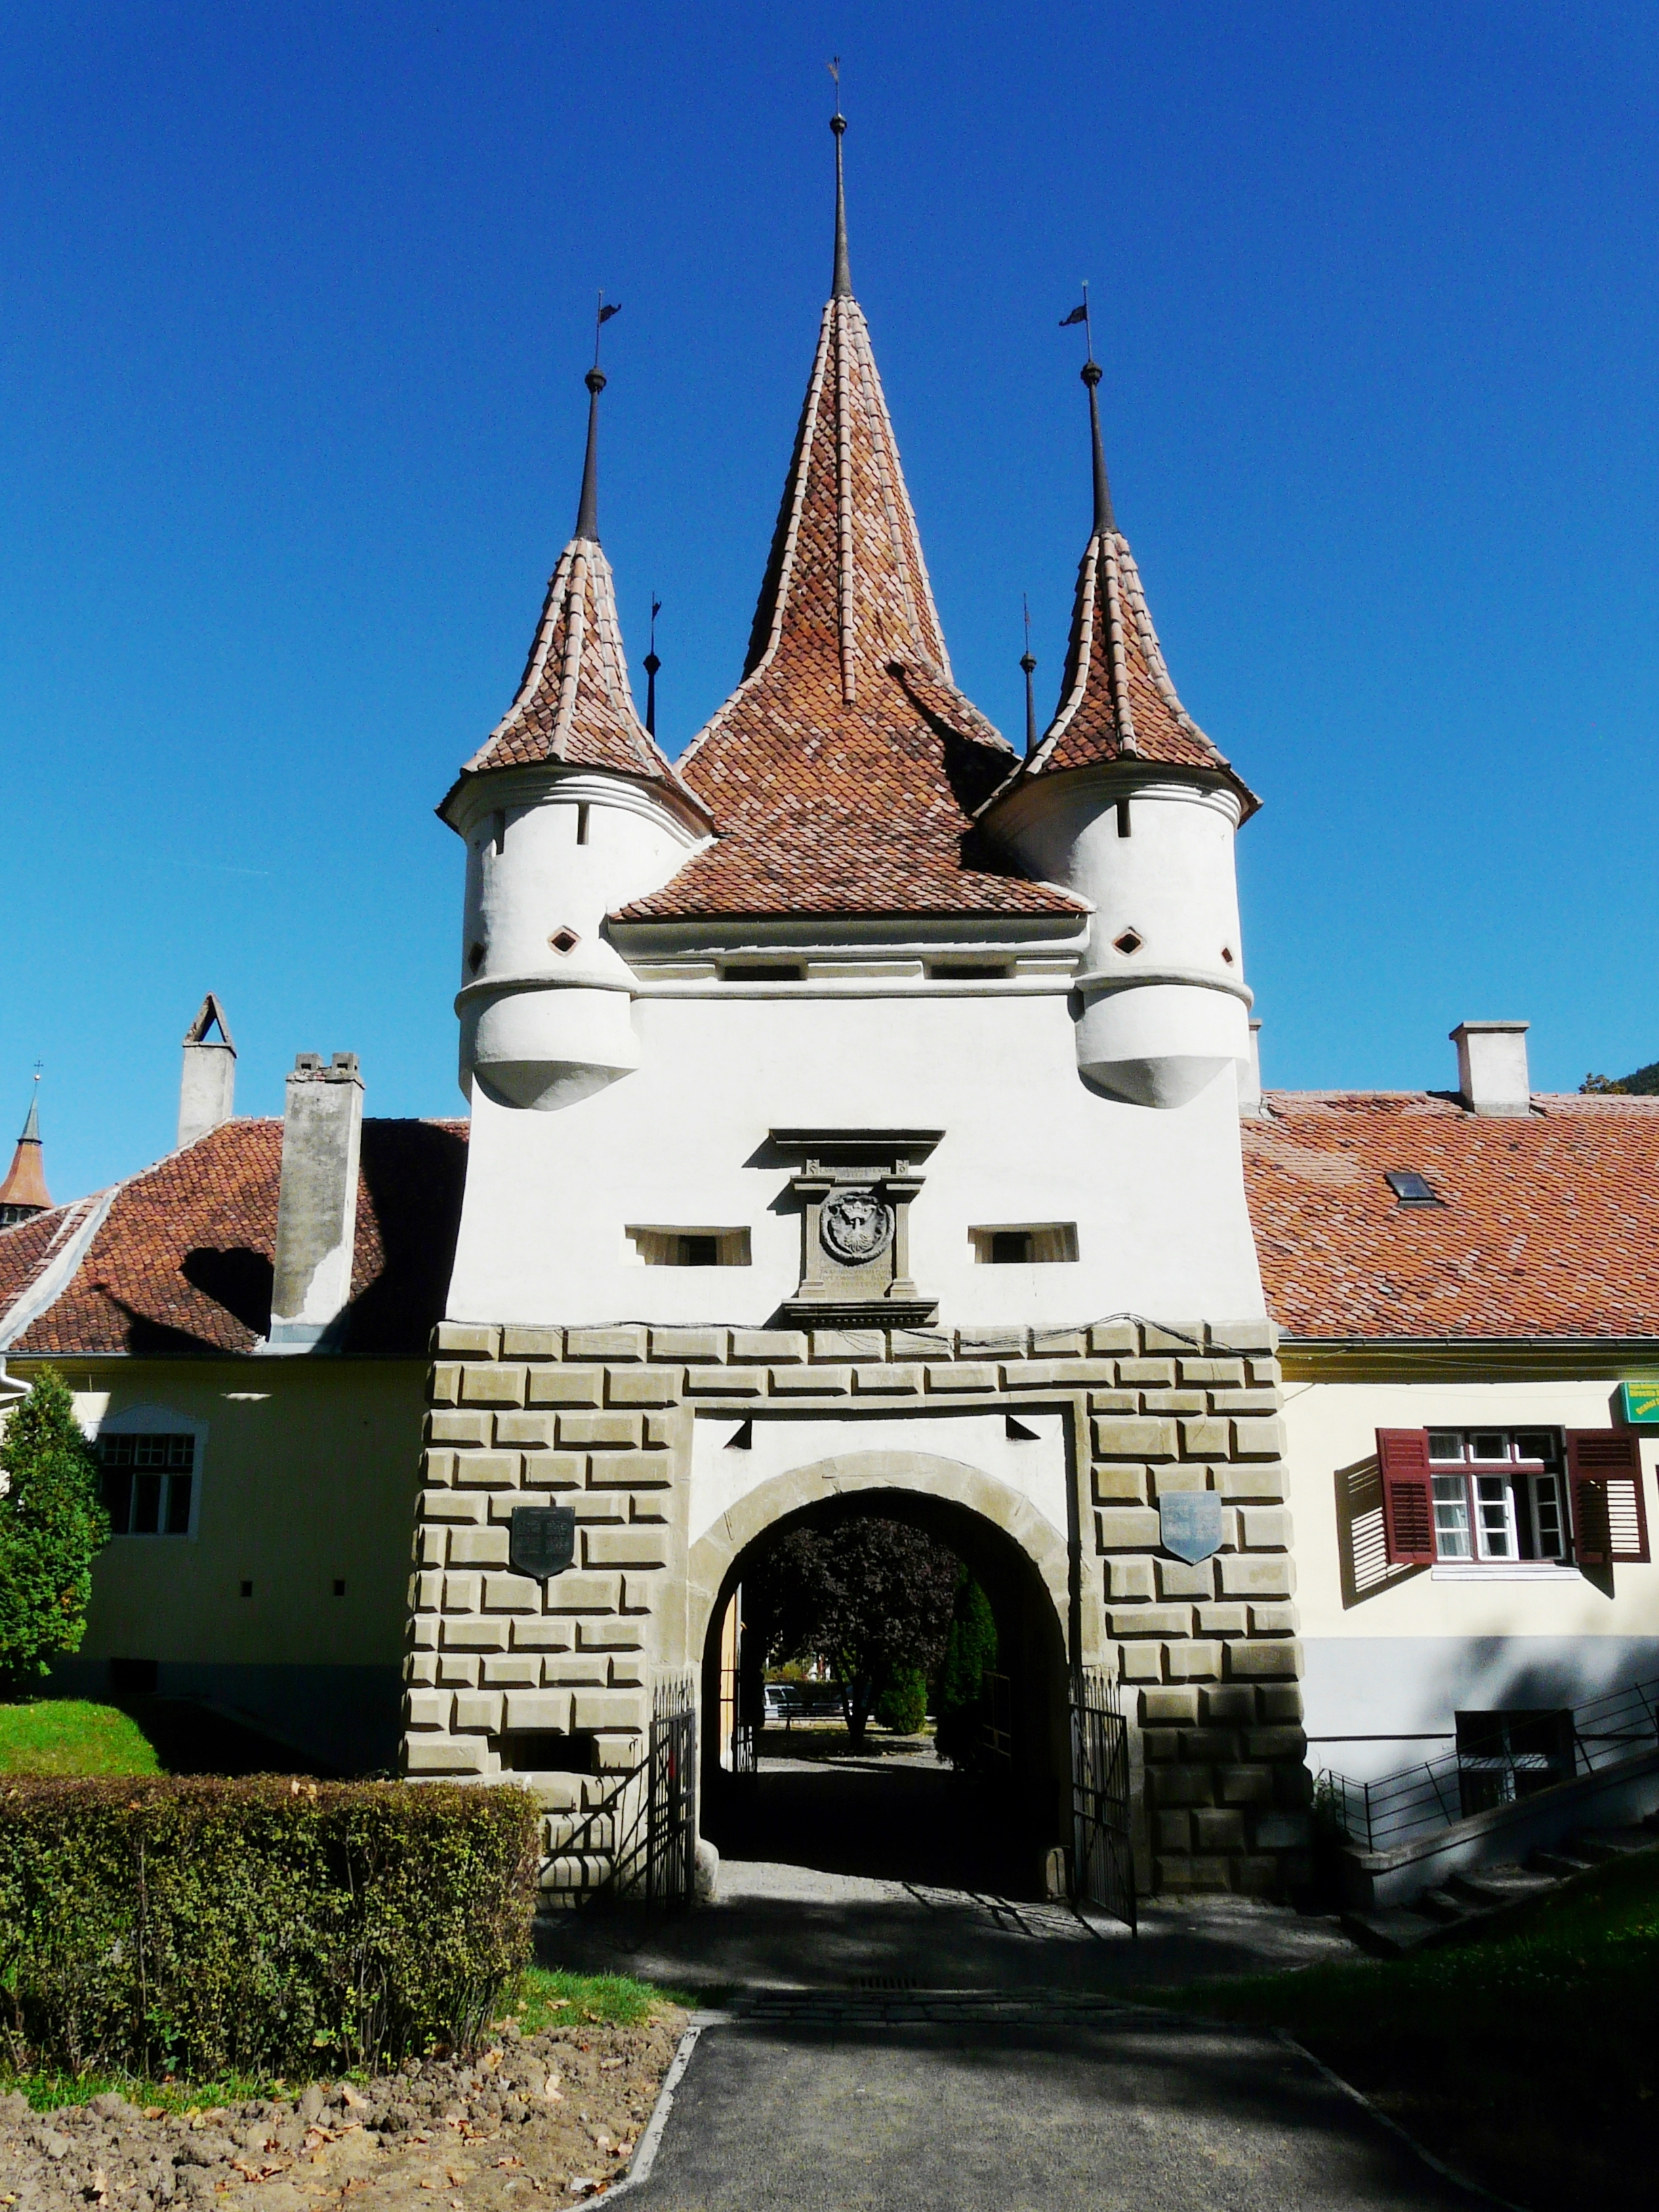 Catherine's Gate, built in 1559, is the only gate of the medieval city still standing in Brasov, Romania.